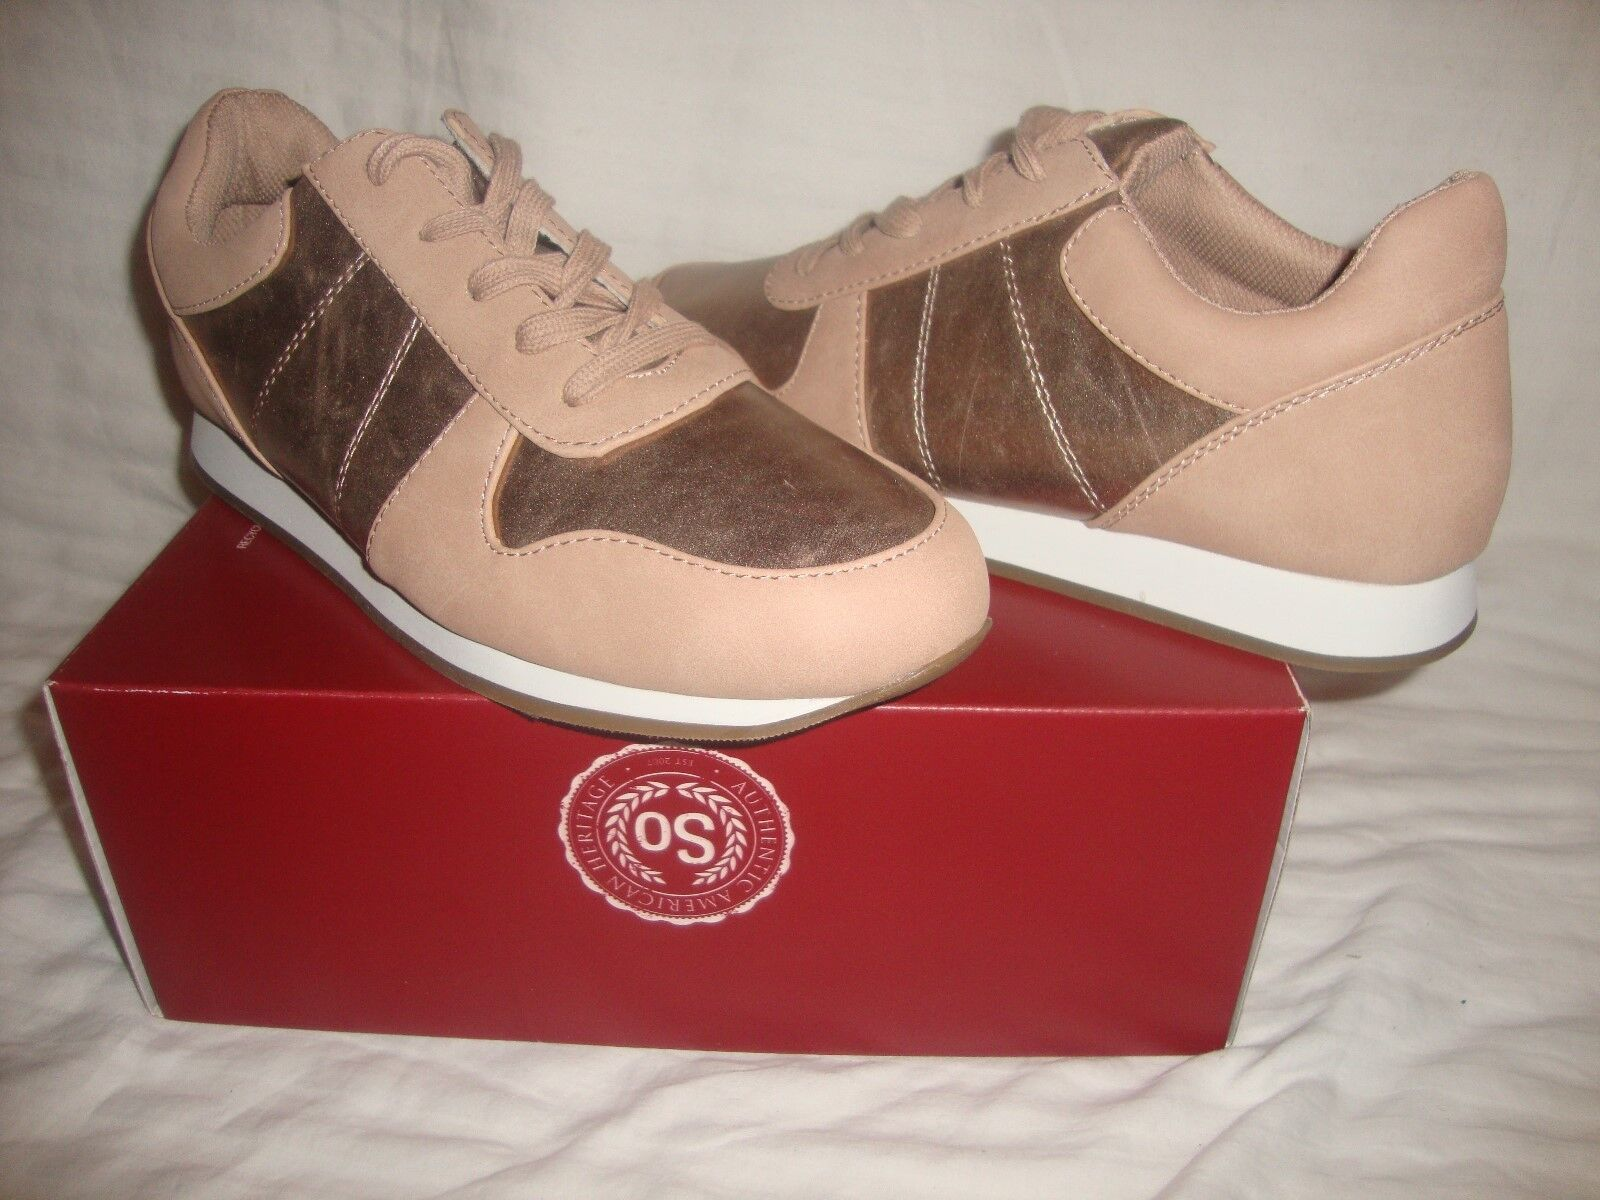 New Women Authentic American Heritage SO Flash Sneakers Blush Shoes Size 10 - Blush Sneakers bad24f